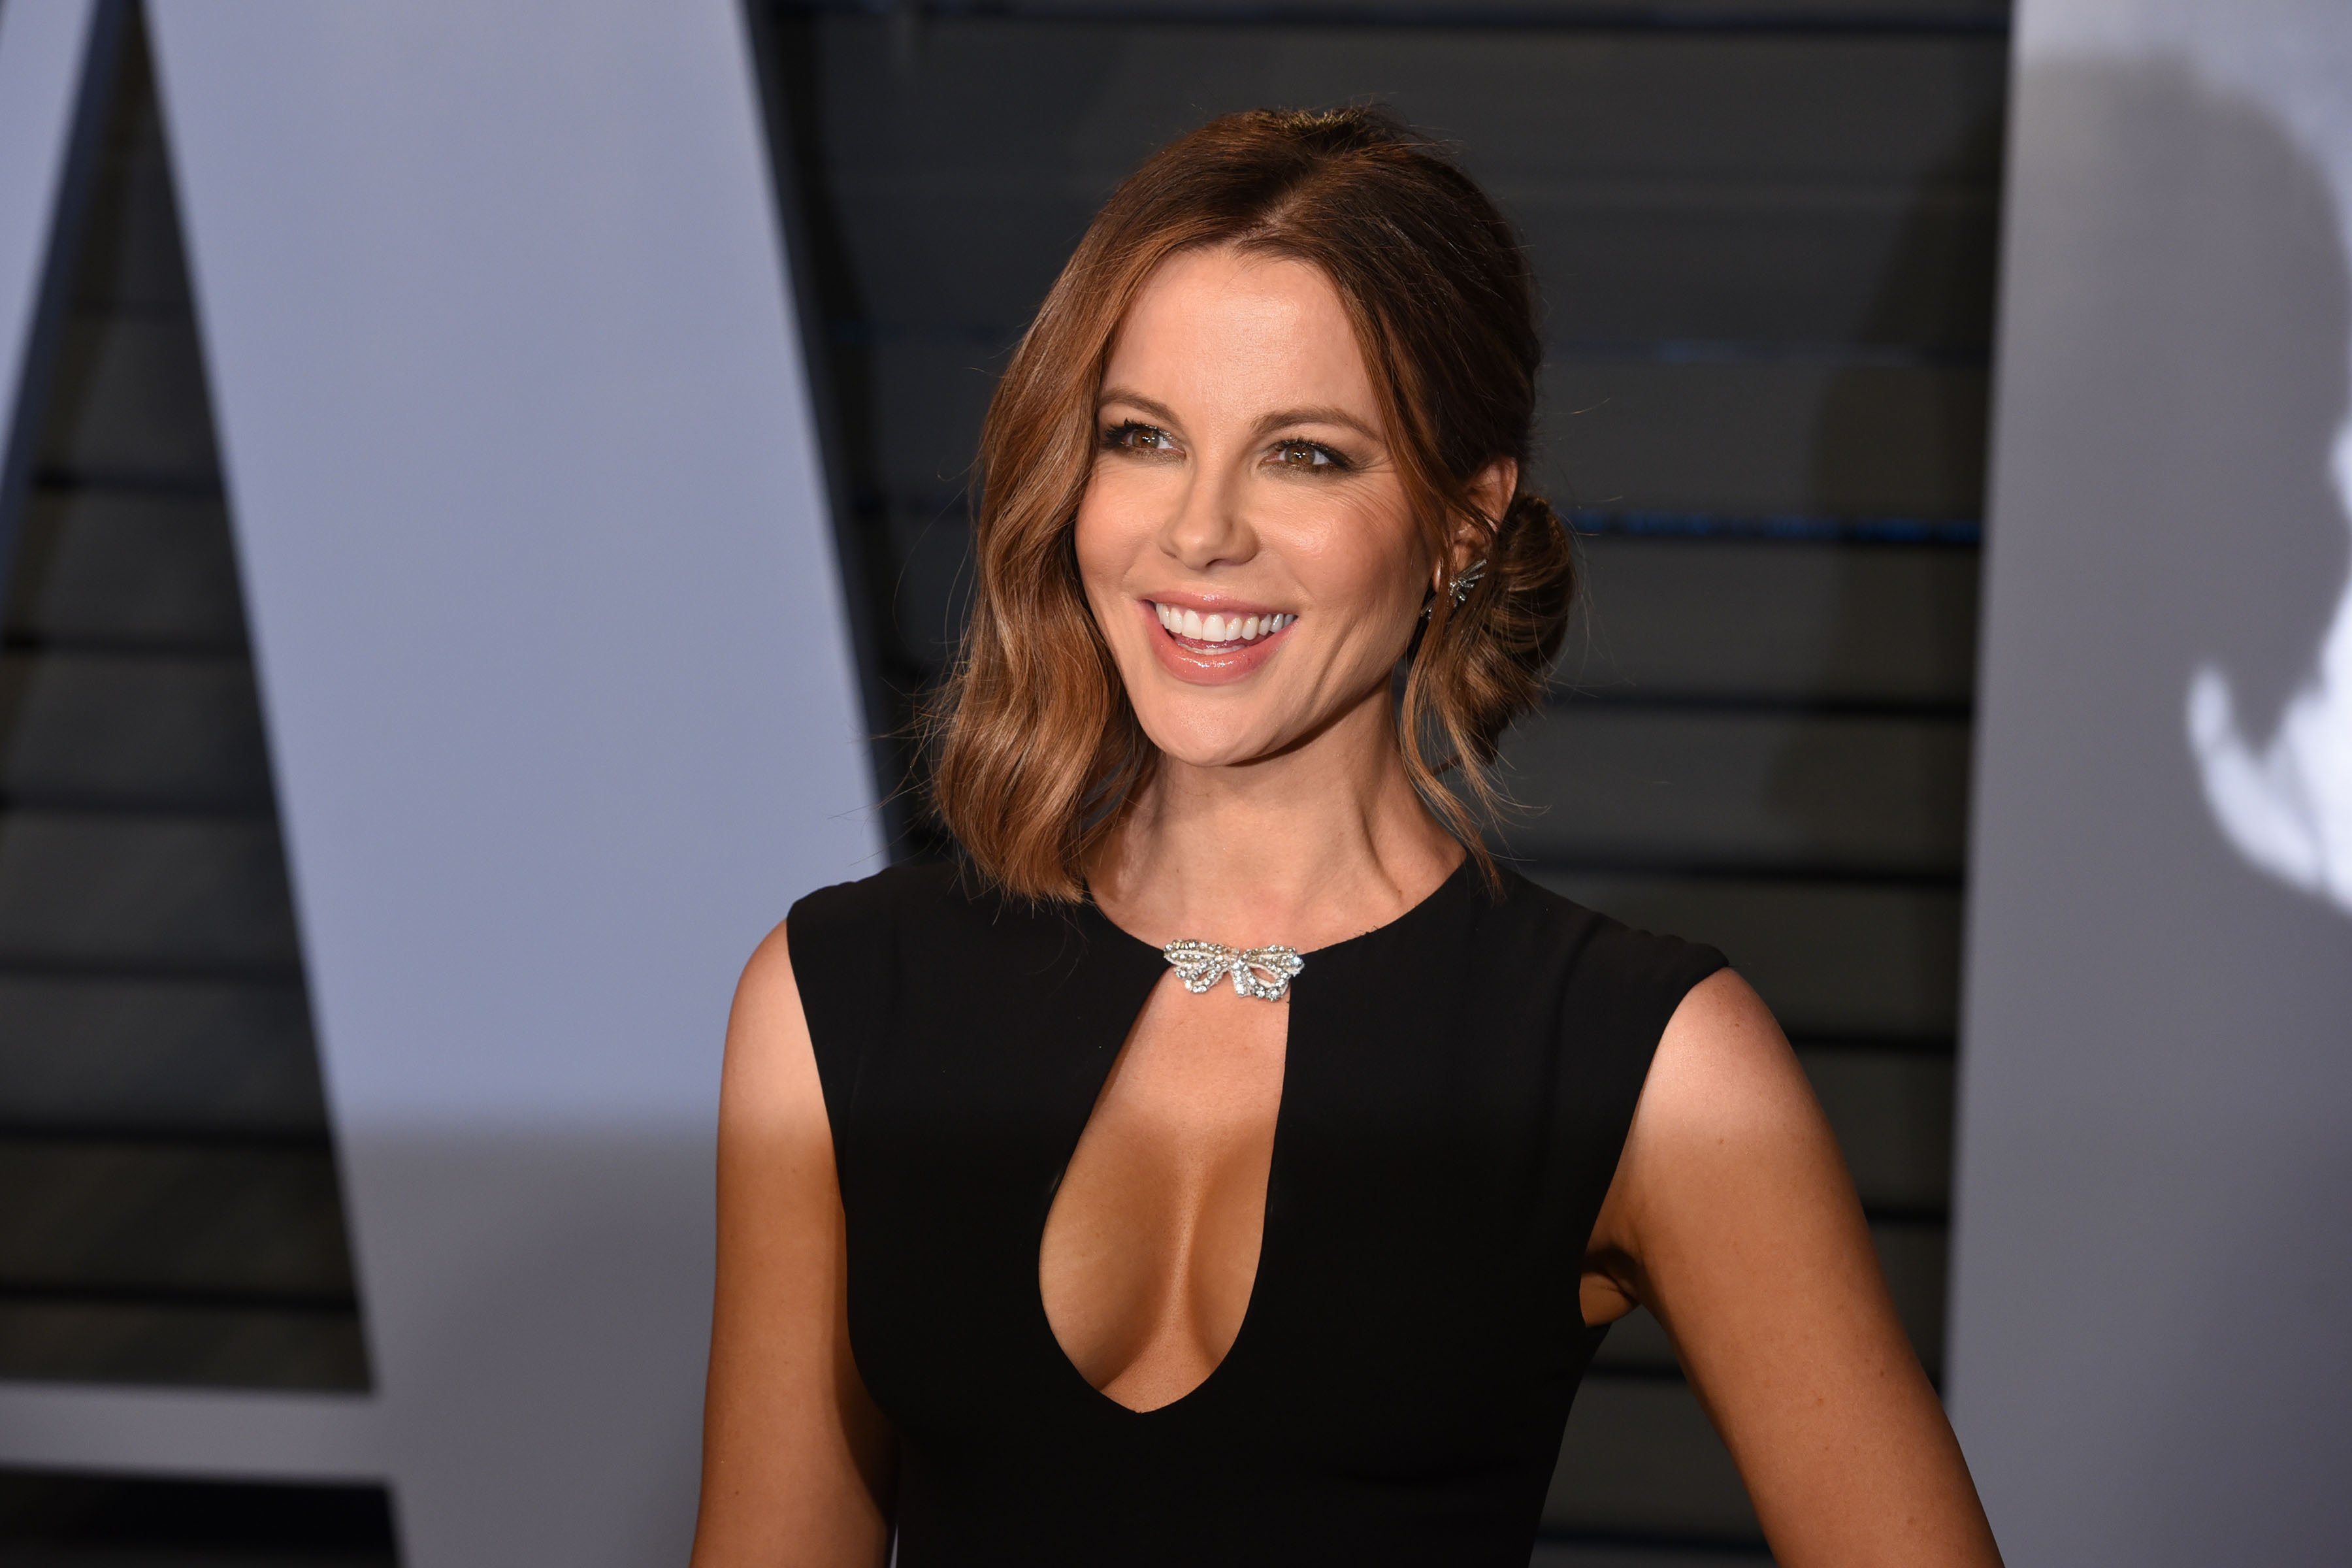 Kate Beckinsale attends 2018 Vanity Fair Oscar Party at Wallis Annenberg Center for the Performing Arts on March 4, 2018 in Beverly Hills, California   Photo: Getty Images